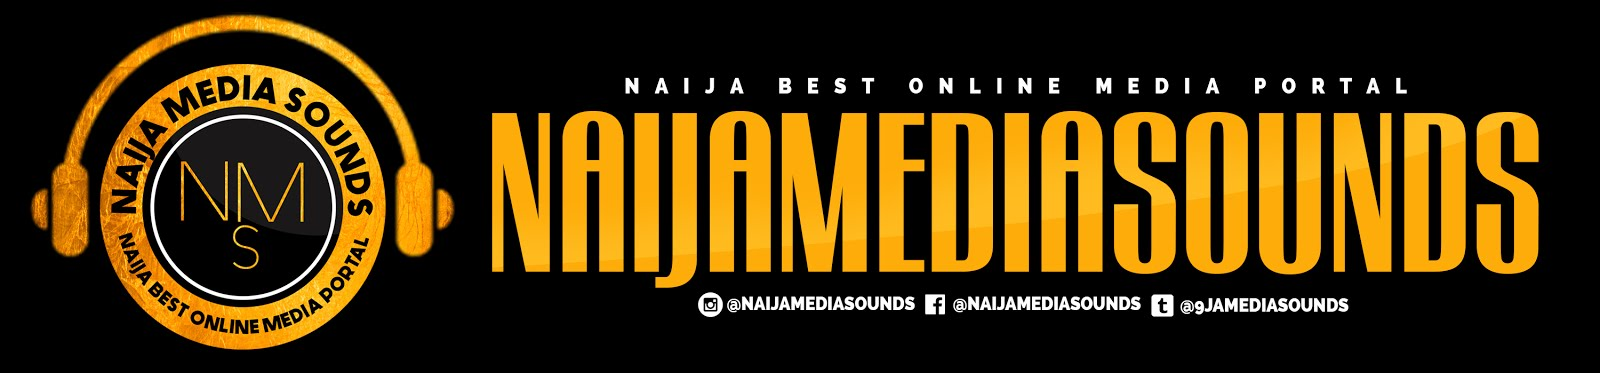 Naijamediasounds | Naija Best Online Media Portal